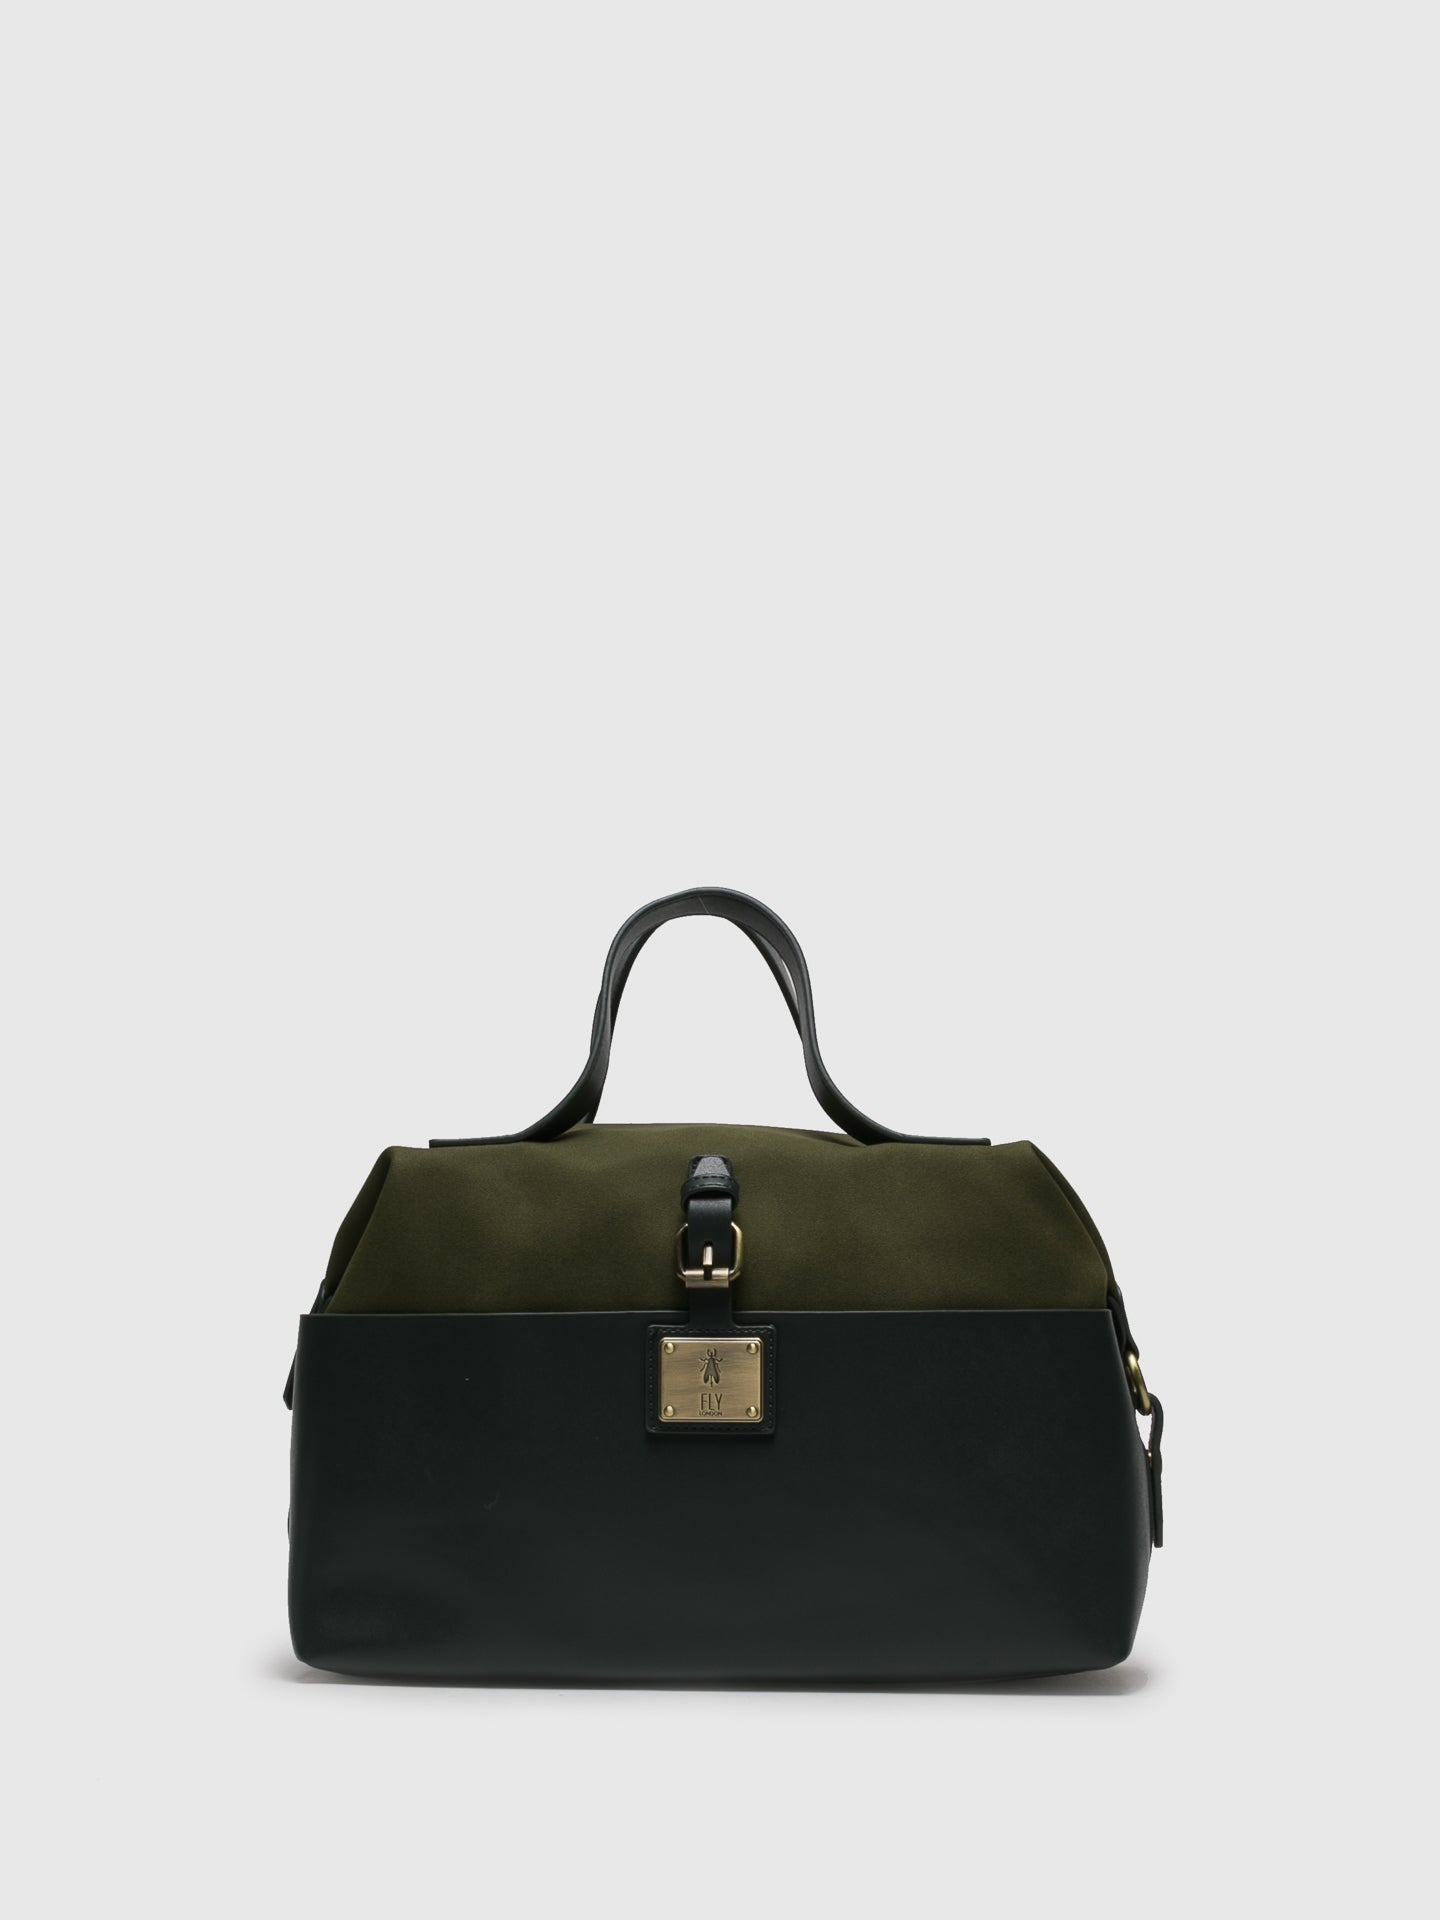 Fly London Green Handbag